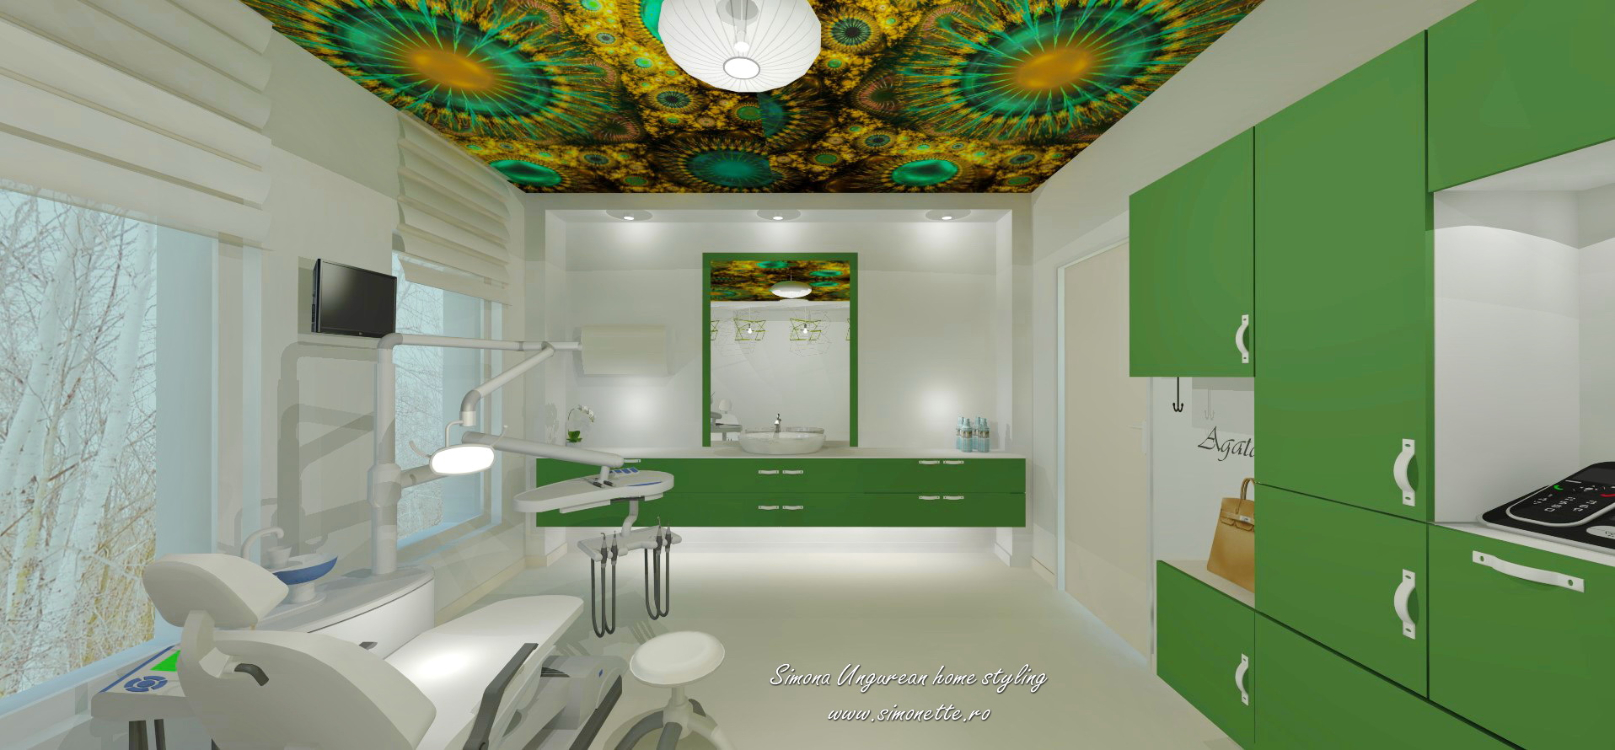 simona-ungurean-homestyling-dental-office-verde-smarald-stomatologie